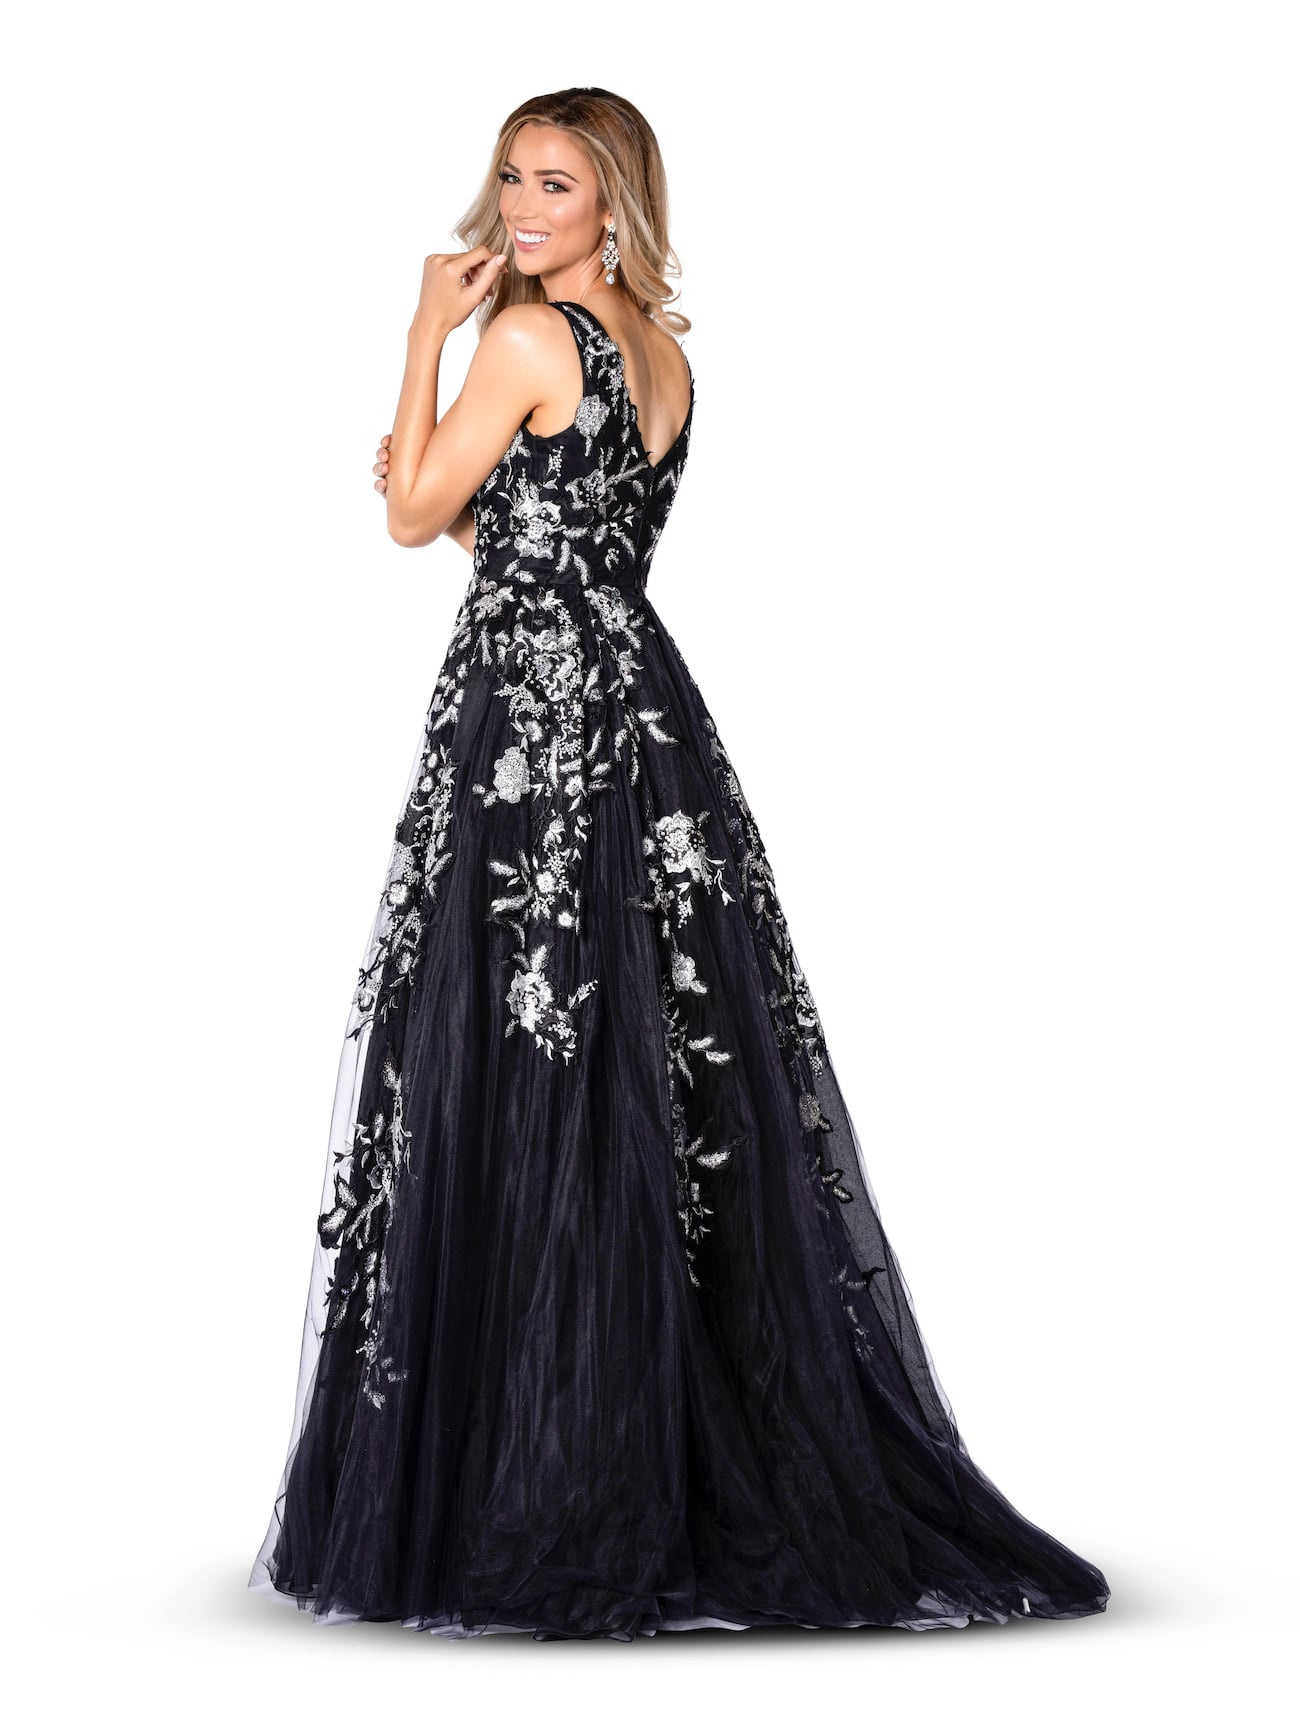 Vienna Black Size 2 Overskirt Plunge Floral A-line Dress on Queenly